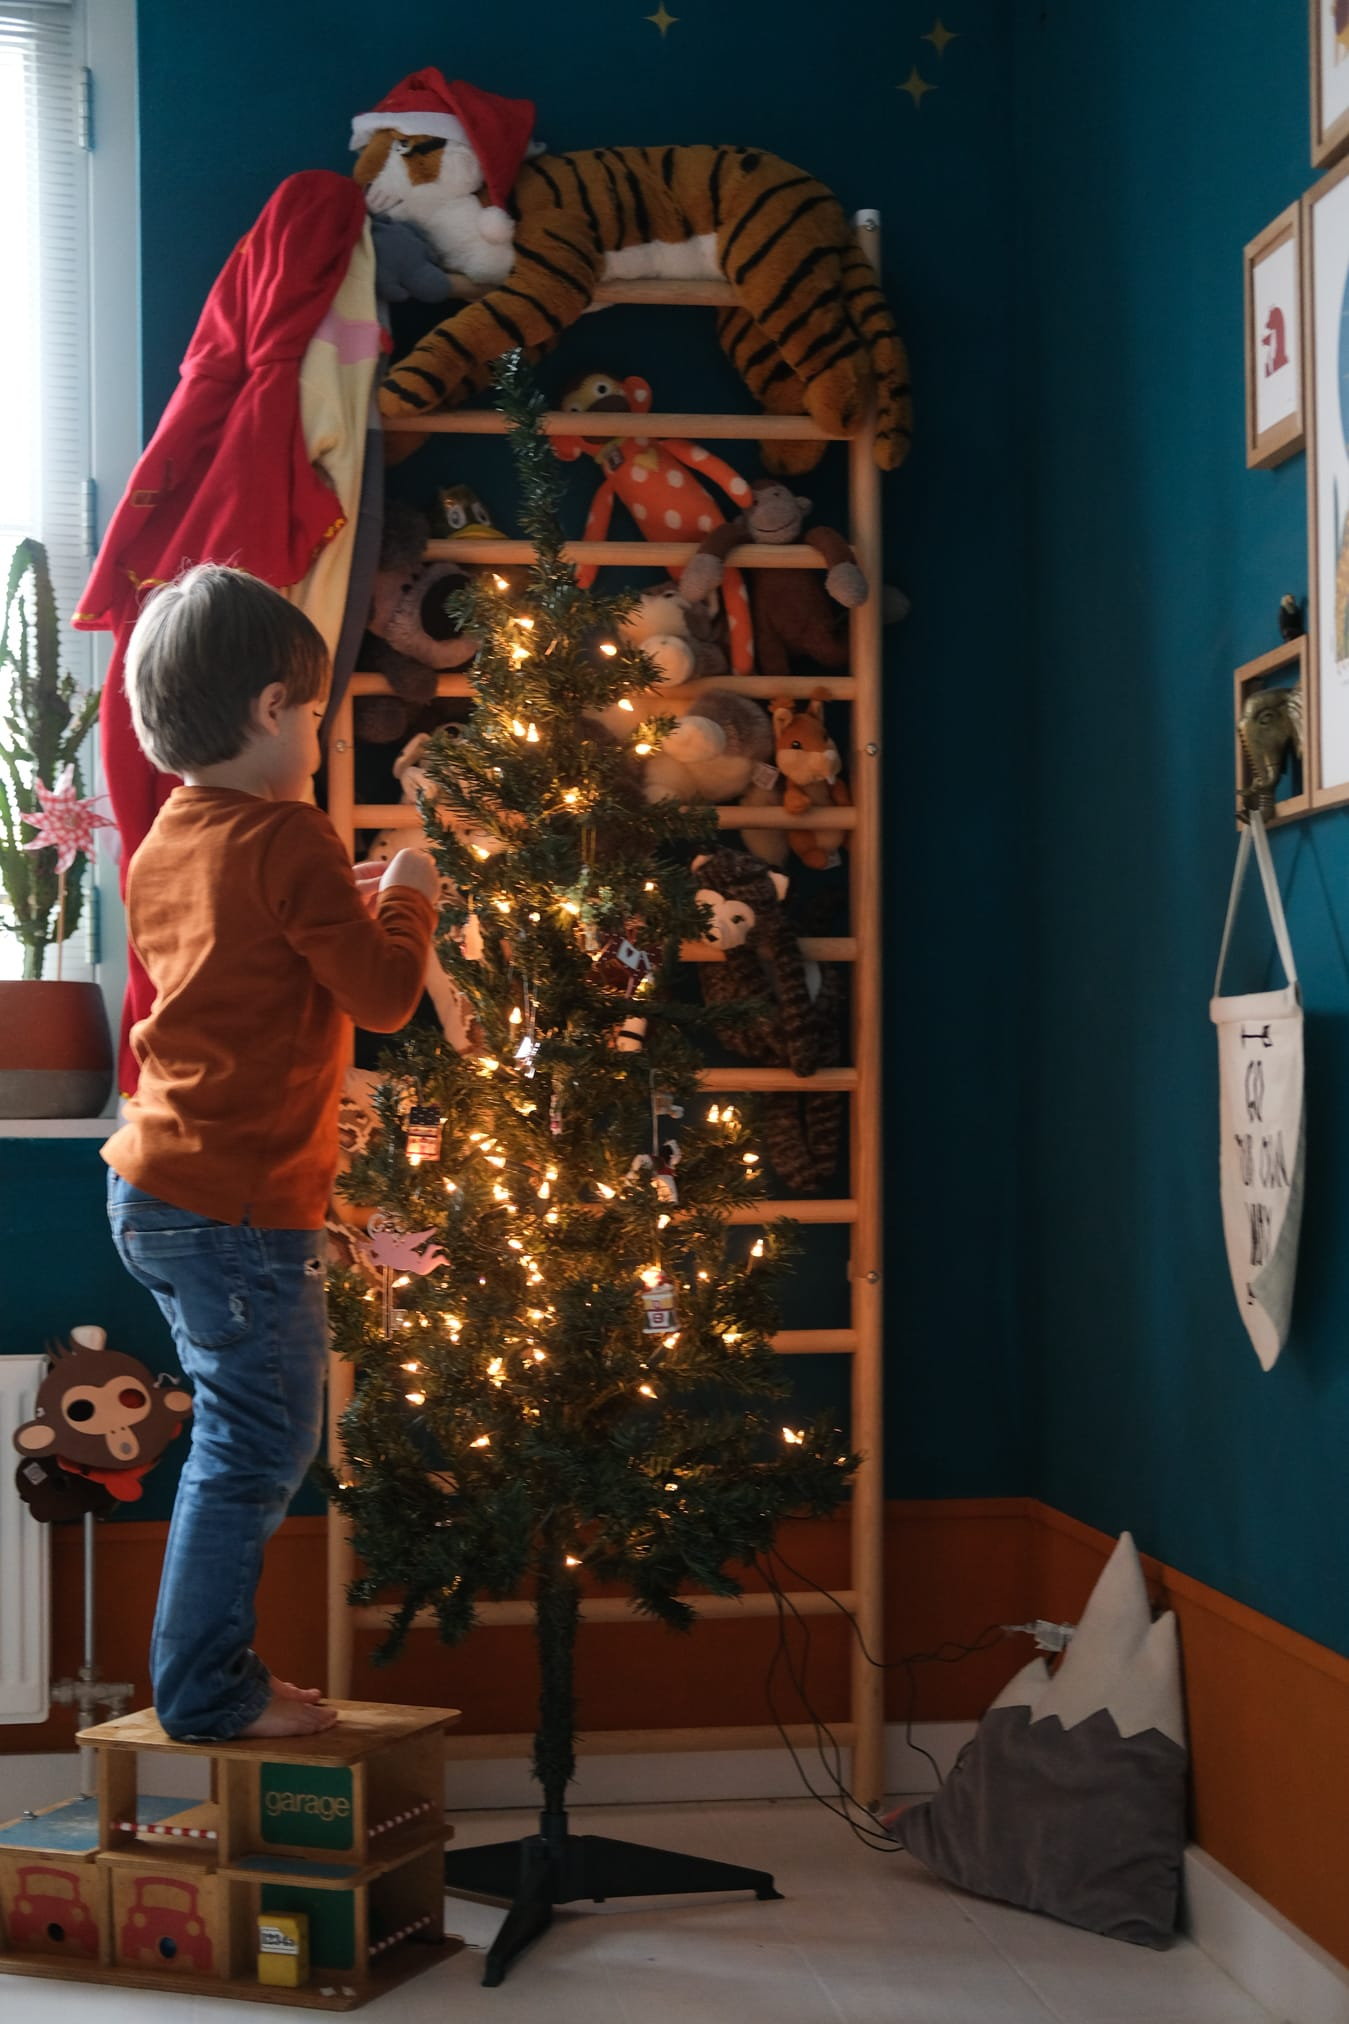 kerstboom kinderkamer